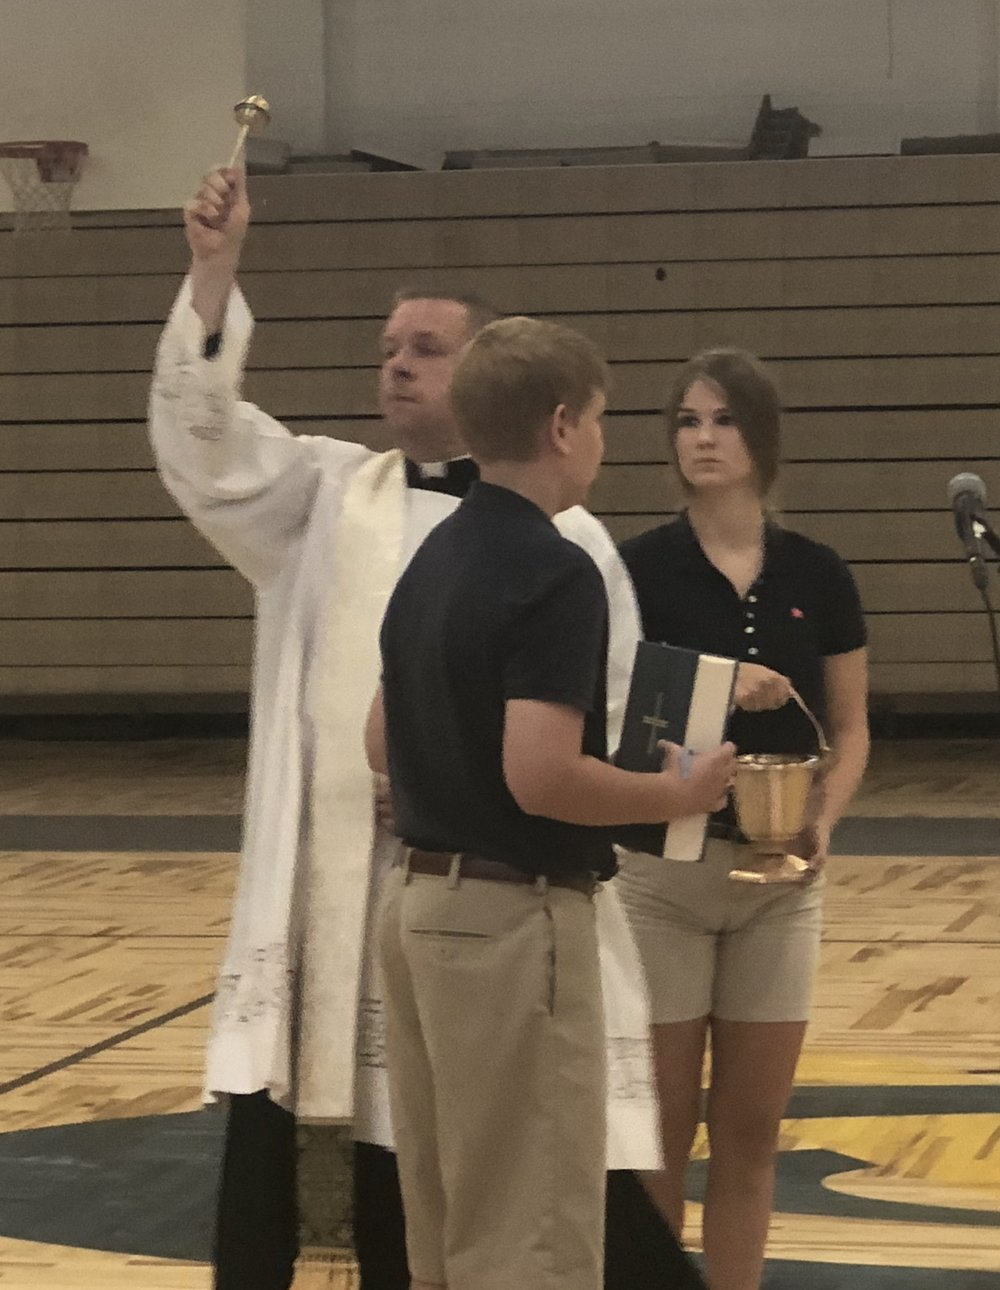 Fr. Britton Hennessey, Chaplain blesses the new gymnasium floor.